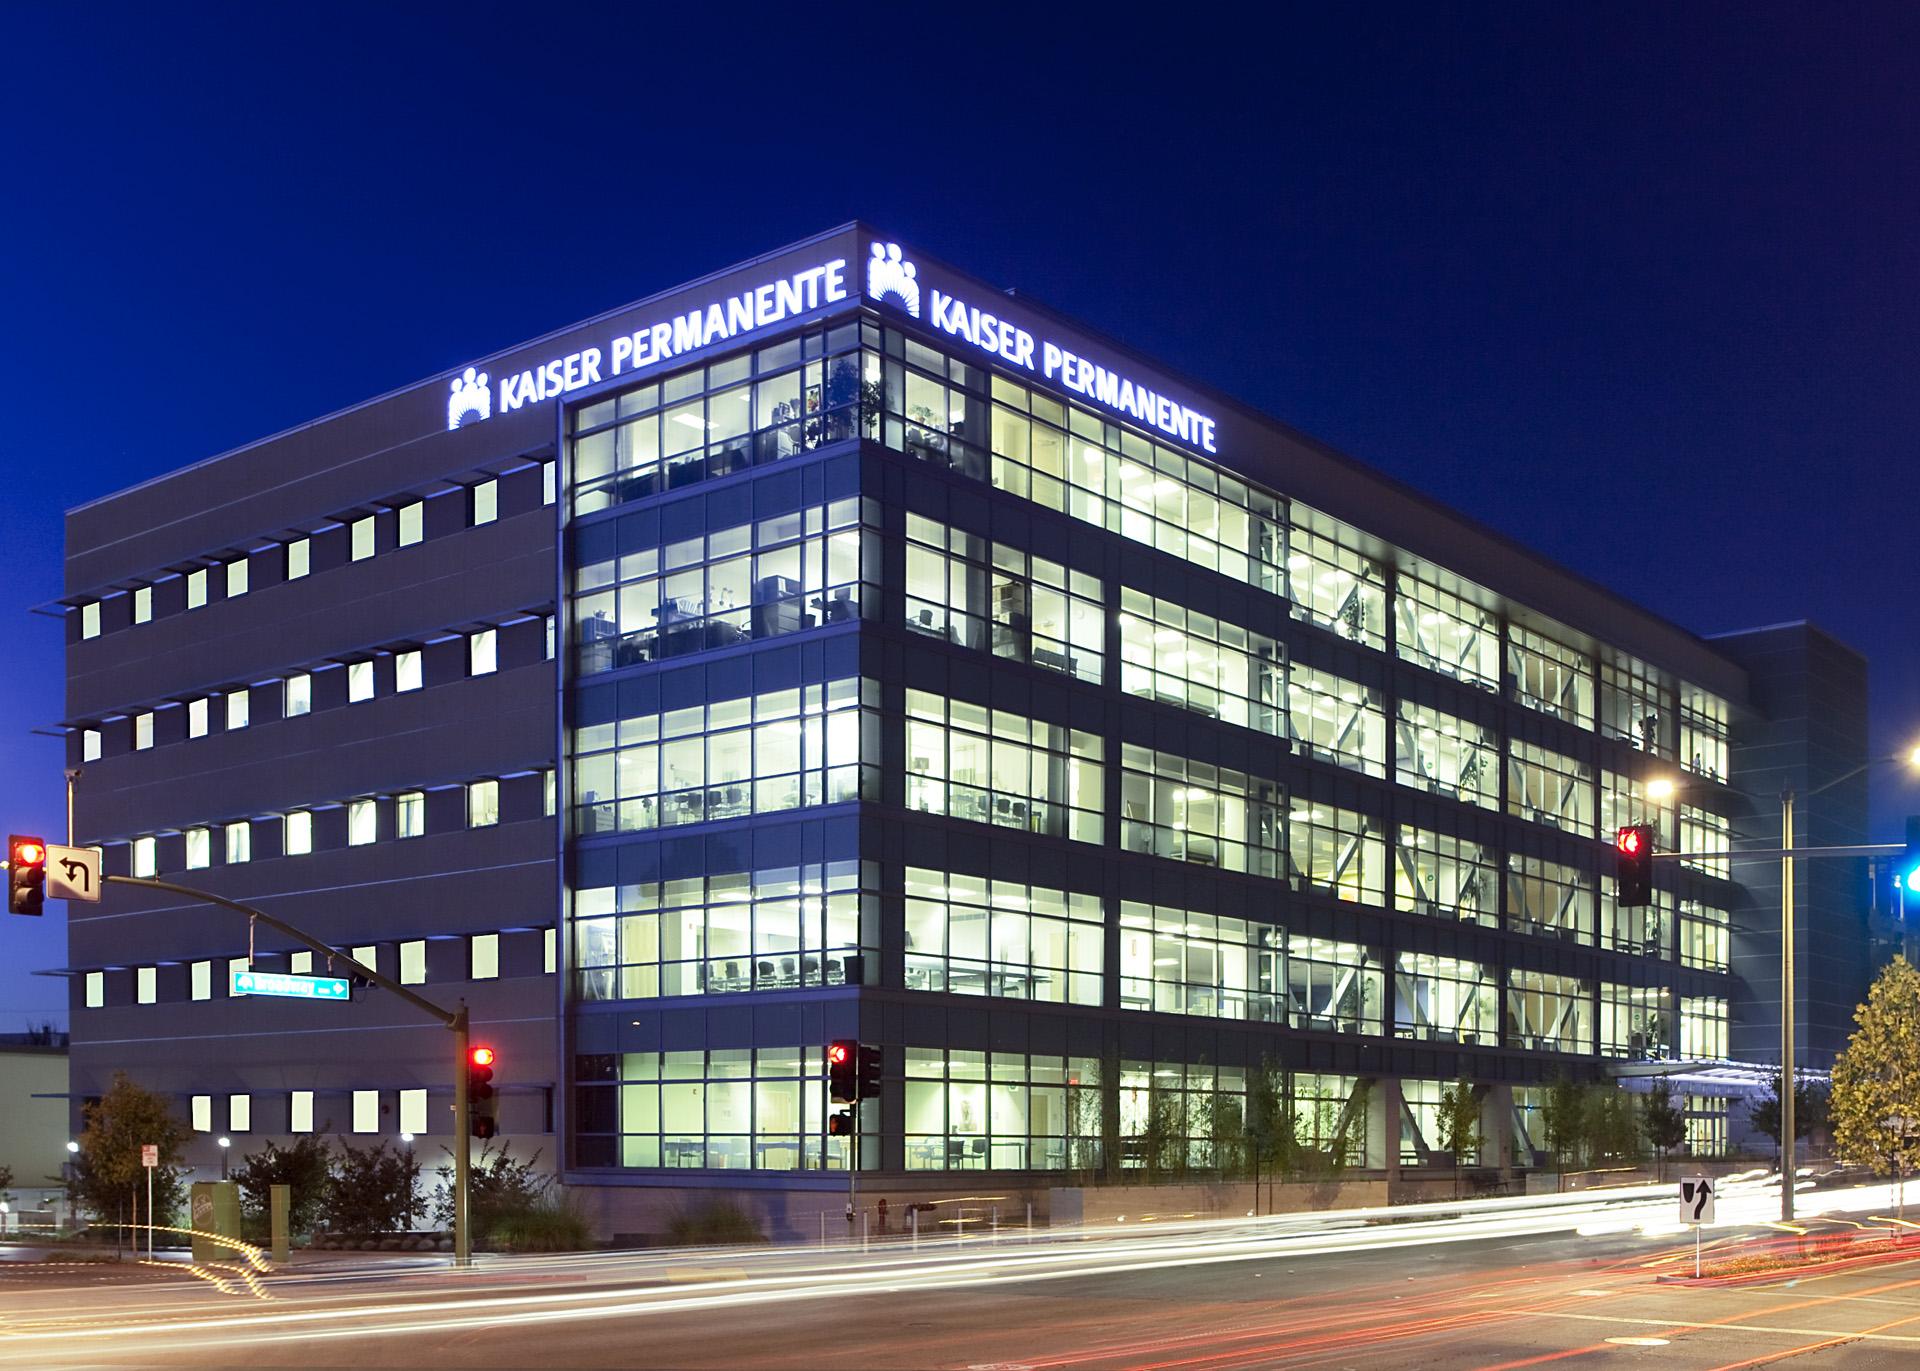 Kaiser Permanente, Oakland Cancer Care Center, Medical Office Building